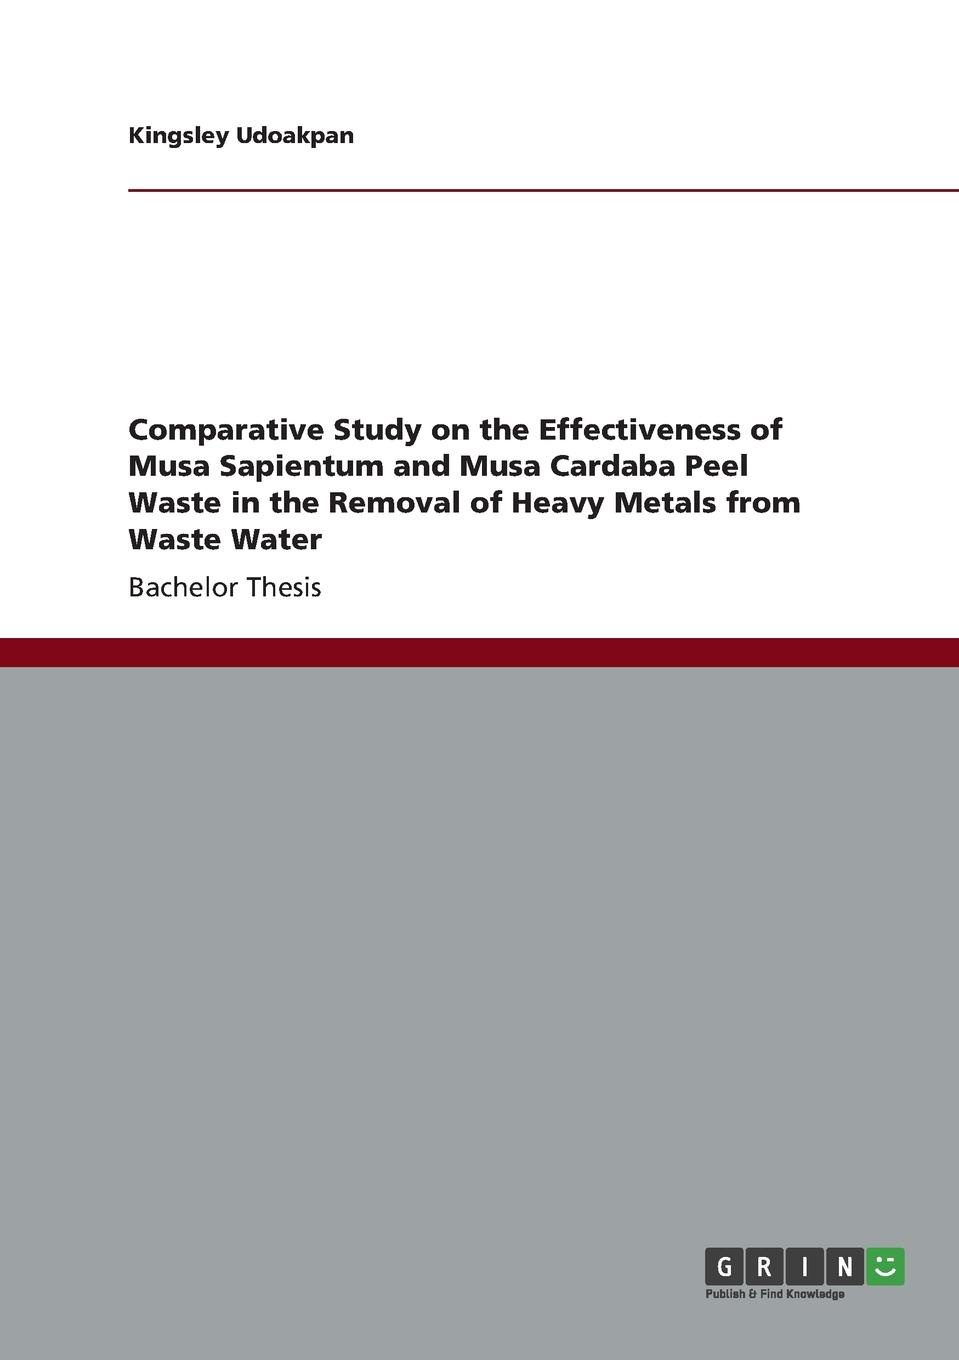 цены на Kingsley Udoakpan Comparative Study on the Effectiveness of Musa Sapientum and Musa Cardaba Peel Waste in the Removal of Heavy Metals from Waste Water  в интернет-магазинах